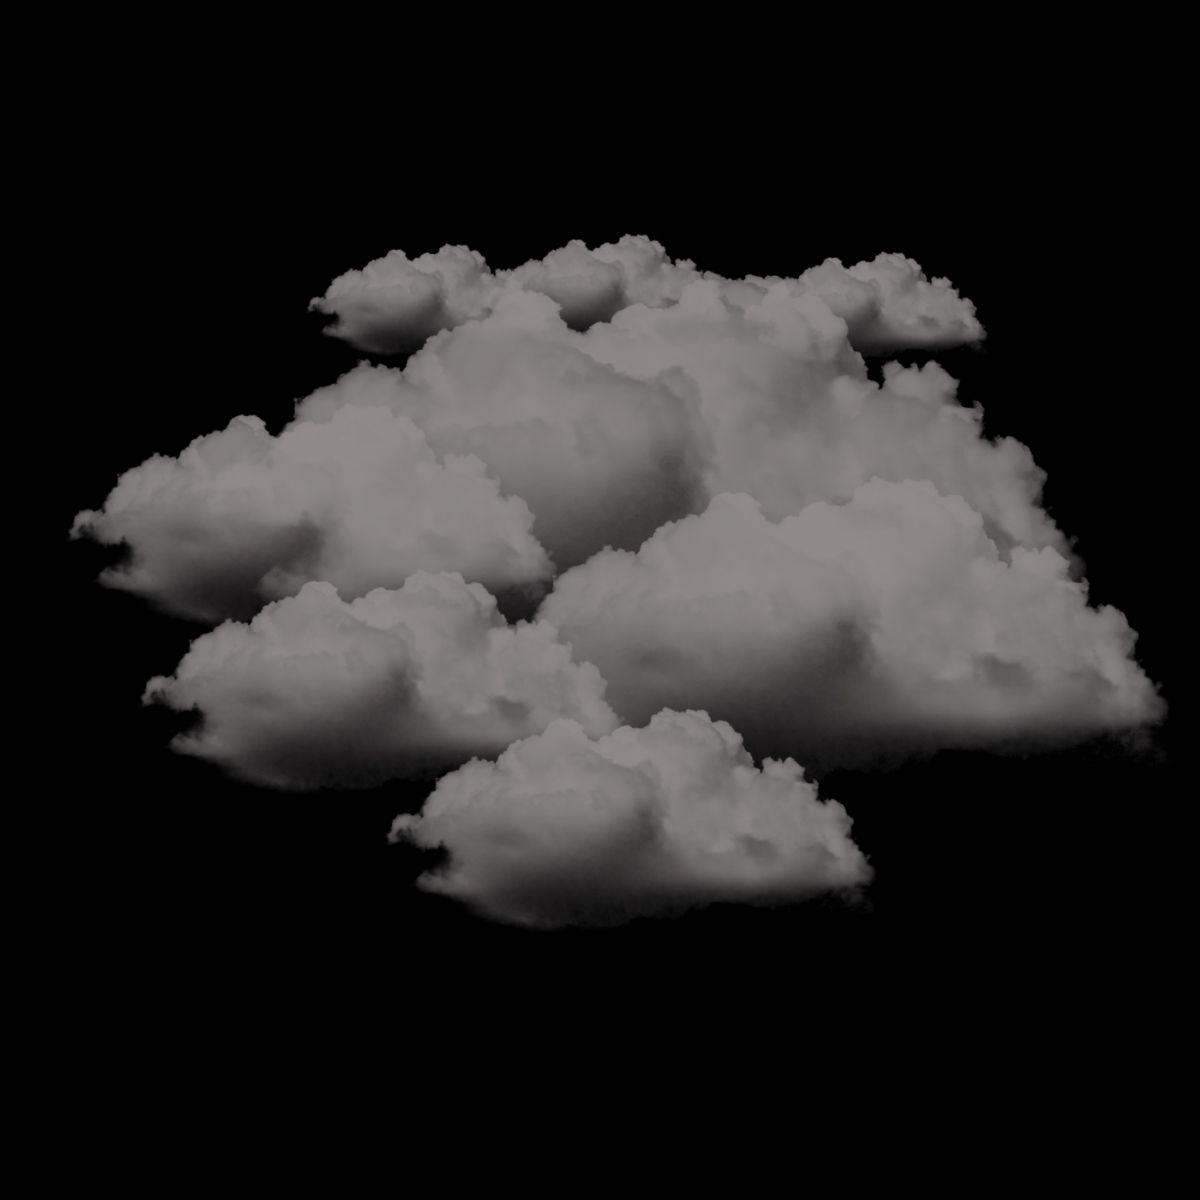 Free Download High Quality Cloud Png Image With No Background Its A Good Quality Png Clouds Image It Is Best To Use In Making Wh Image Cloud Clouds Png Images